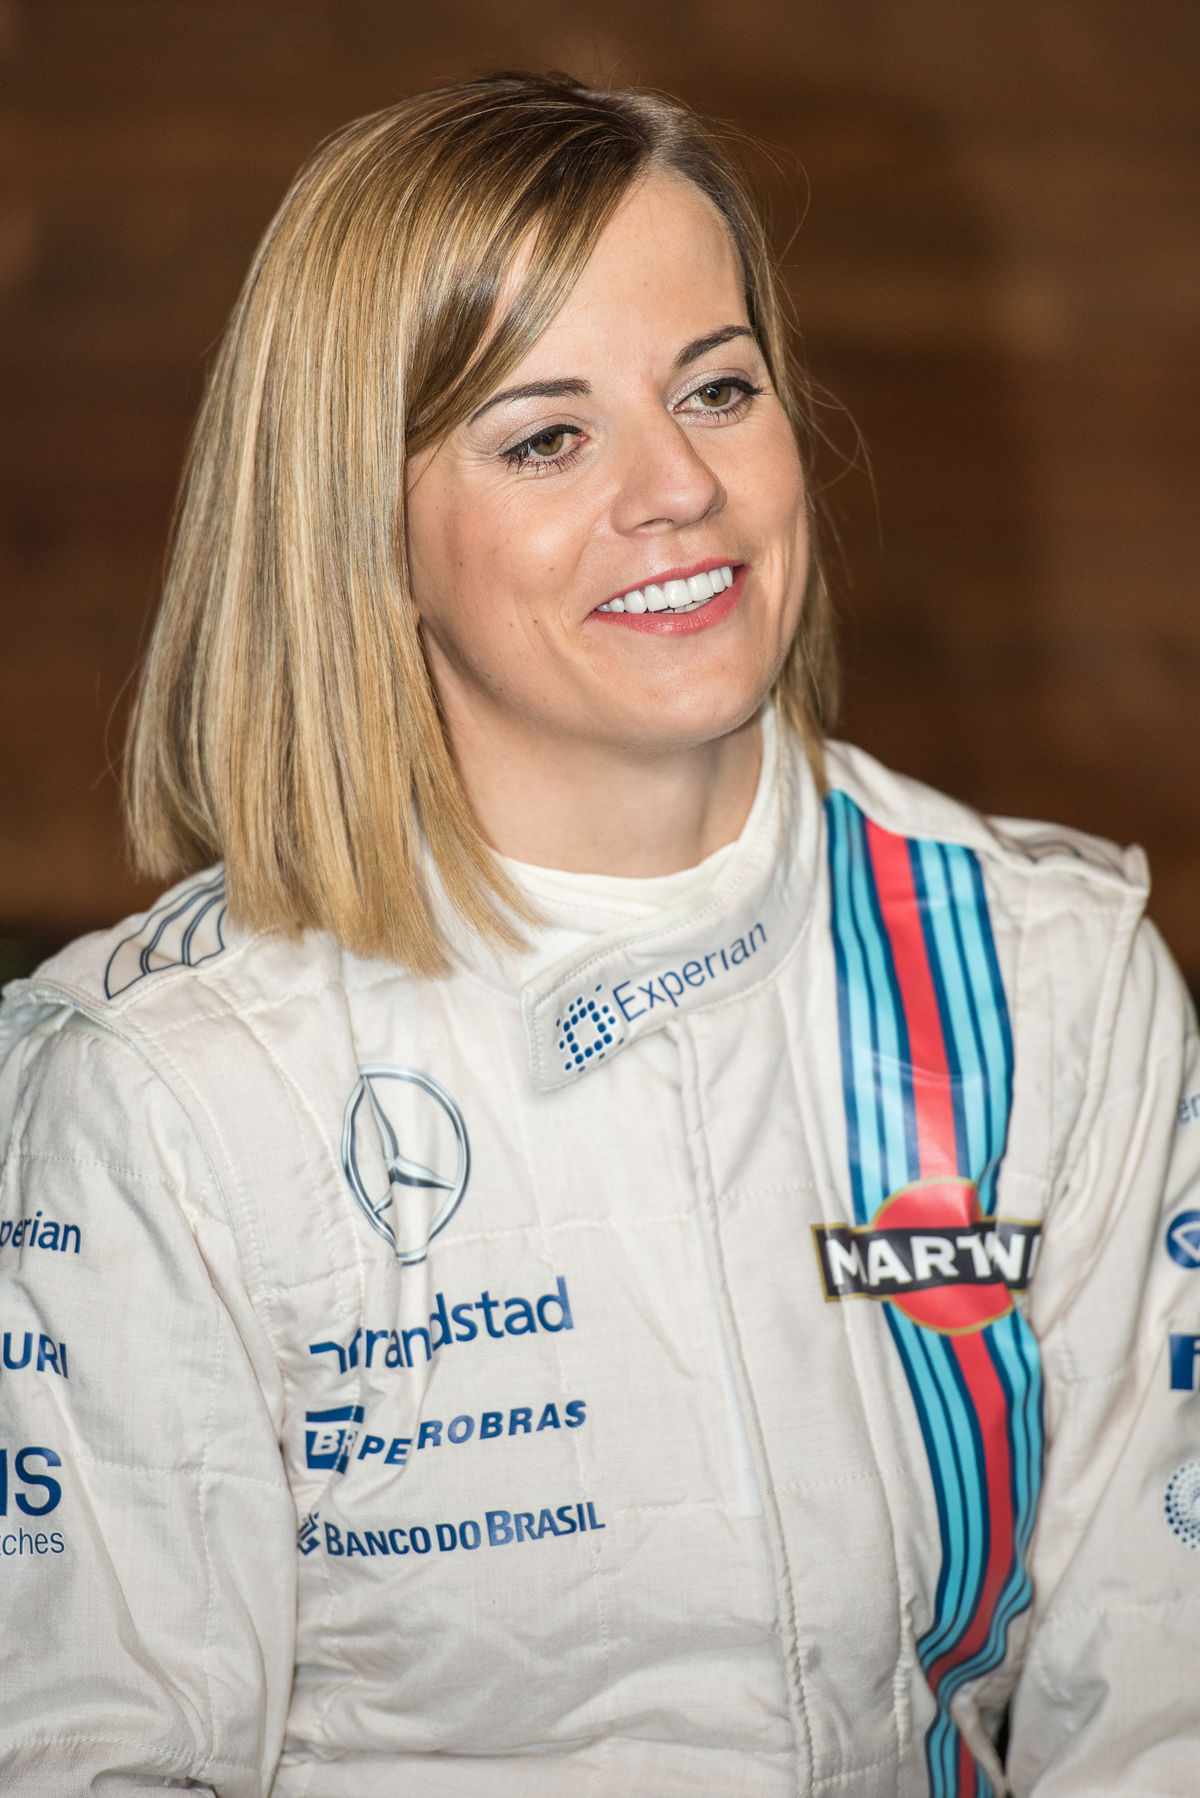 Paparazzi Susie Wolff nudes (59 photo), Fappening